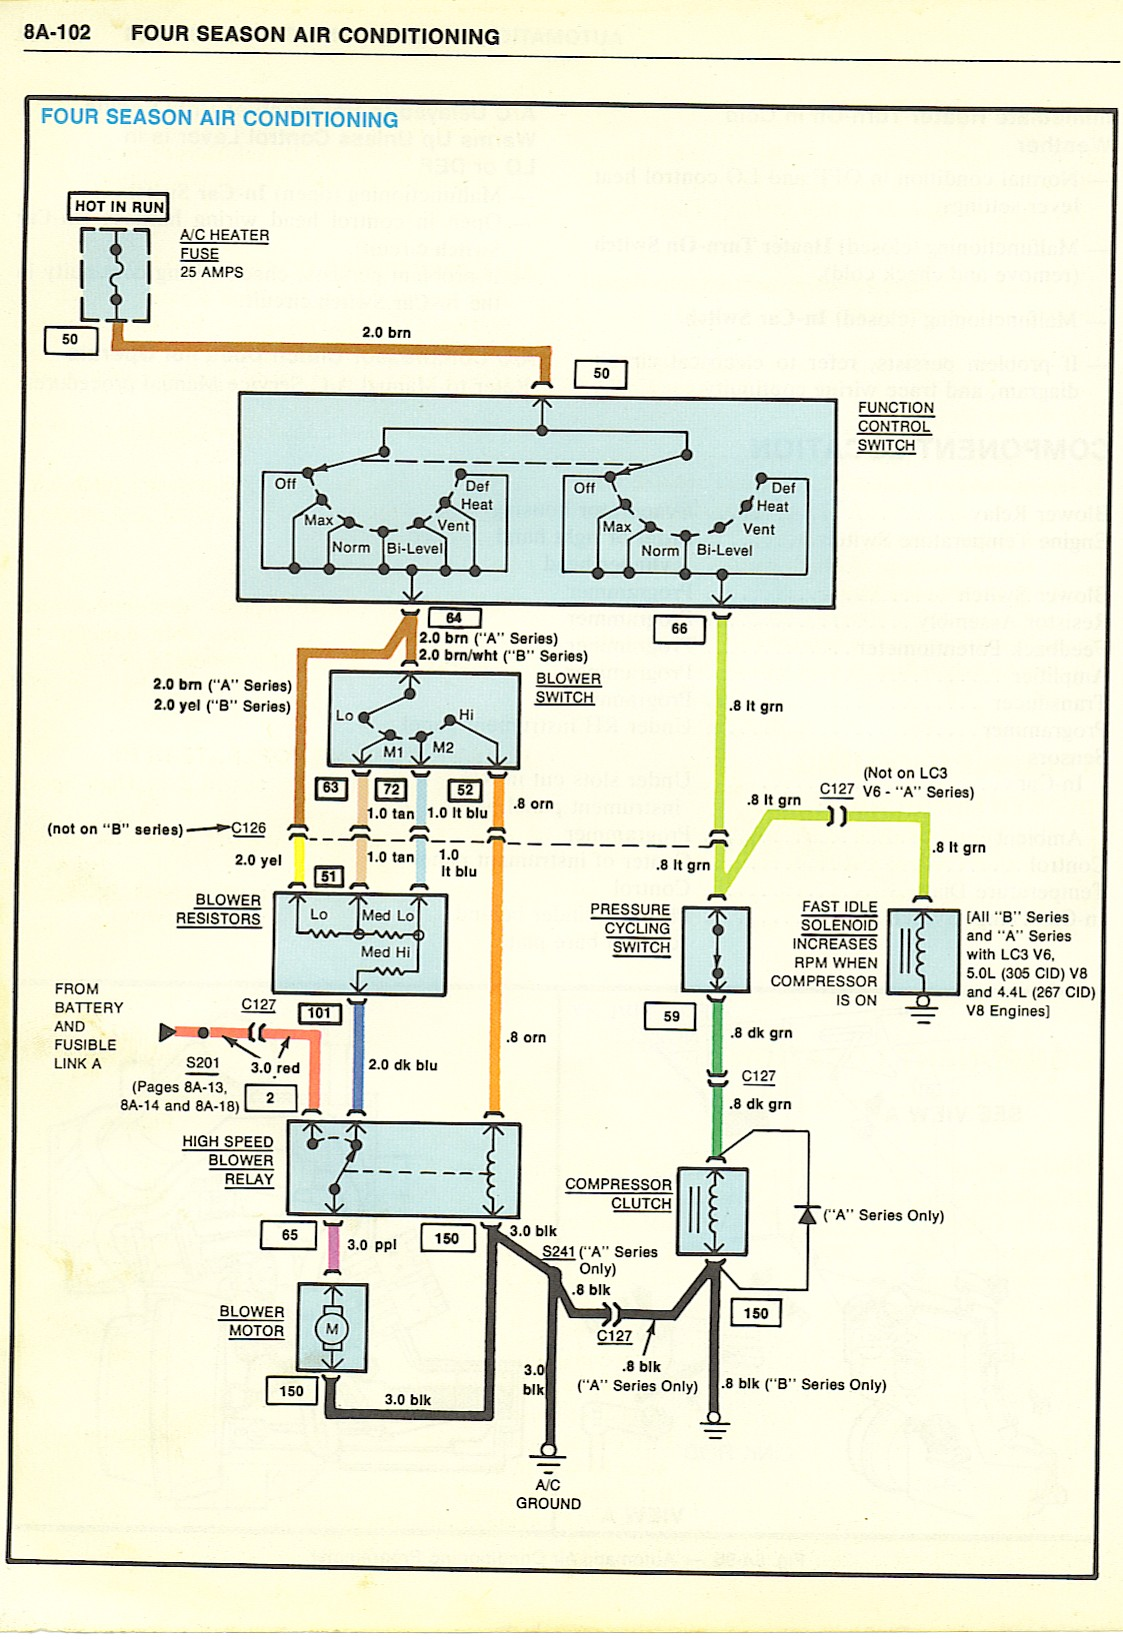 hight resolution of 1980 camaro ac wiring schematic wiring diagram blog1980 camaro wiring diagram wiring diagram 1980 camaro ac